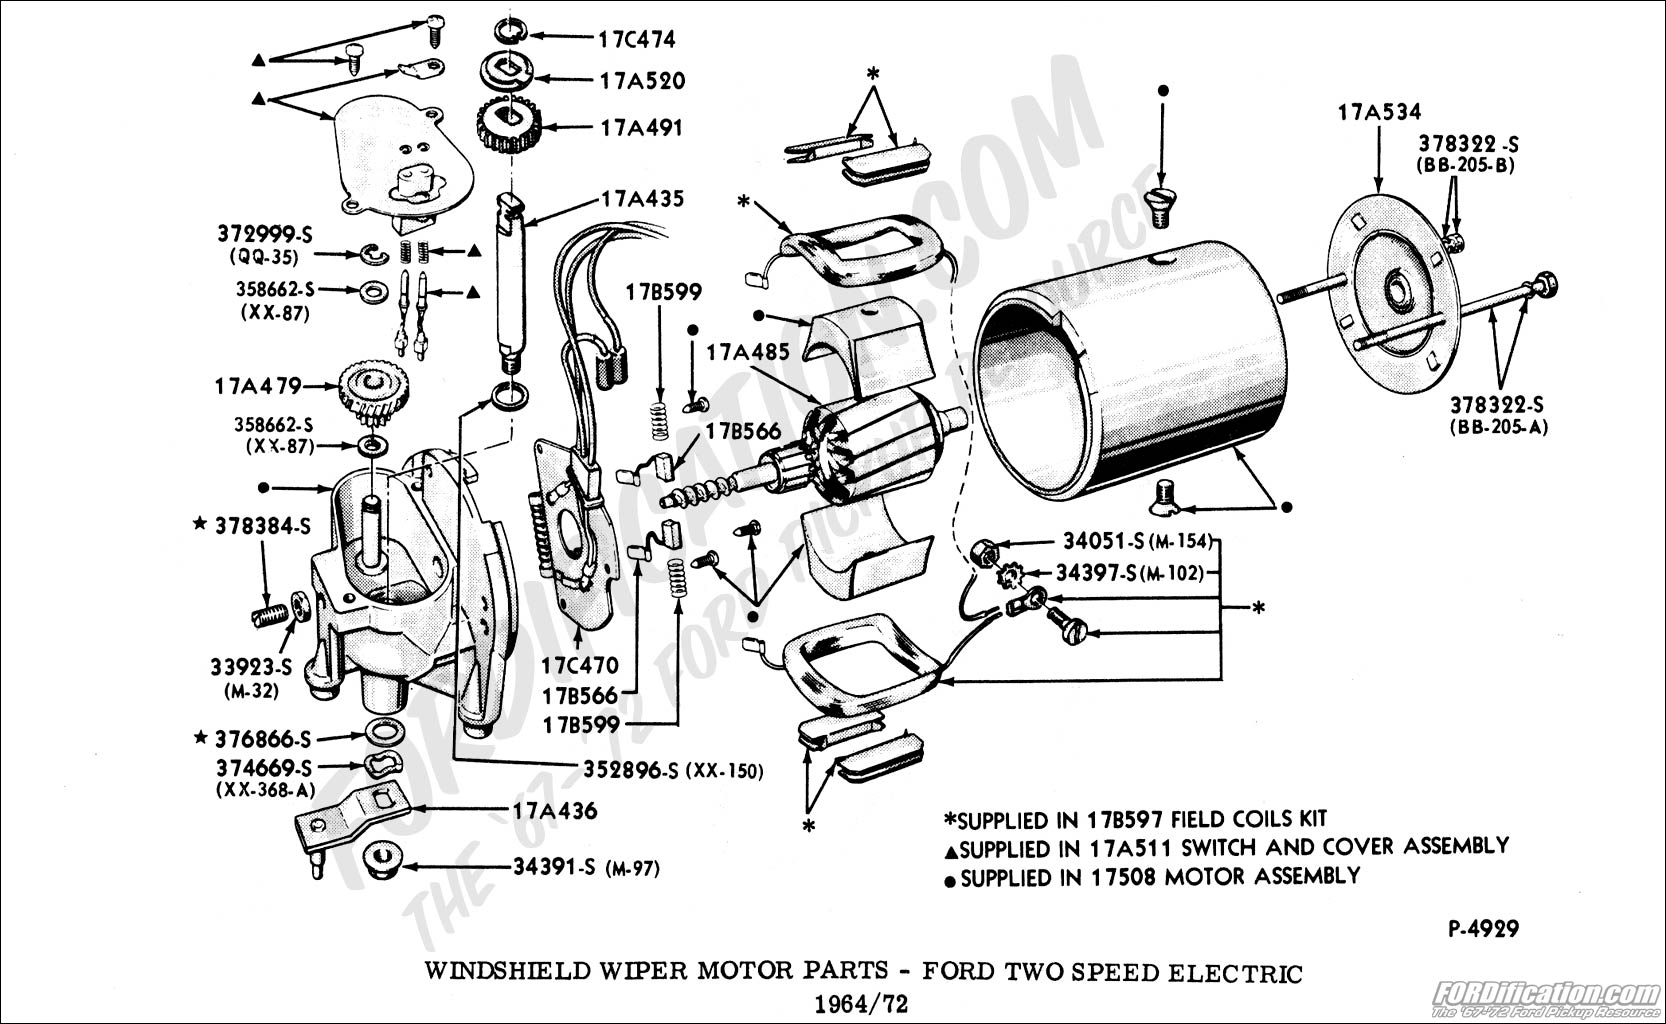 Schematics i on 2009 hyundai santa fe wiring diagram